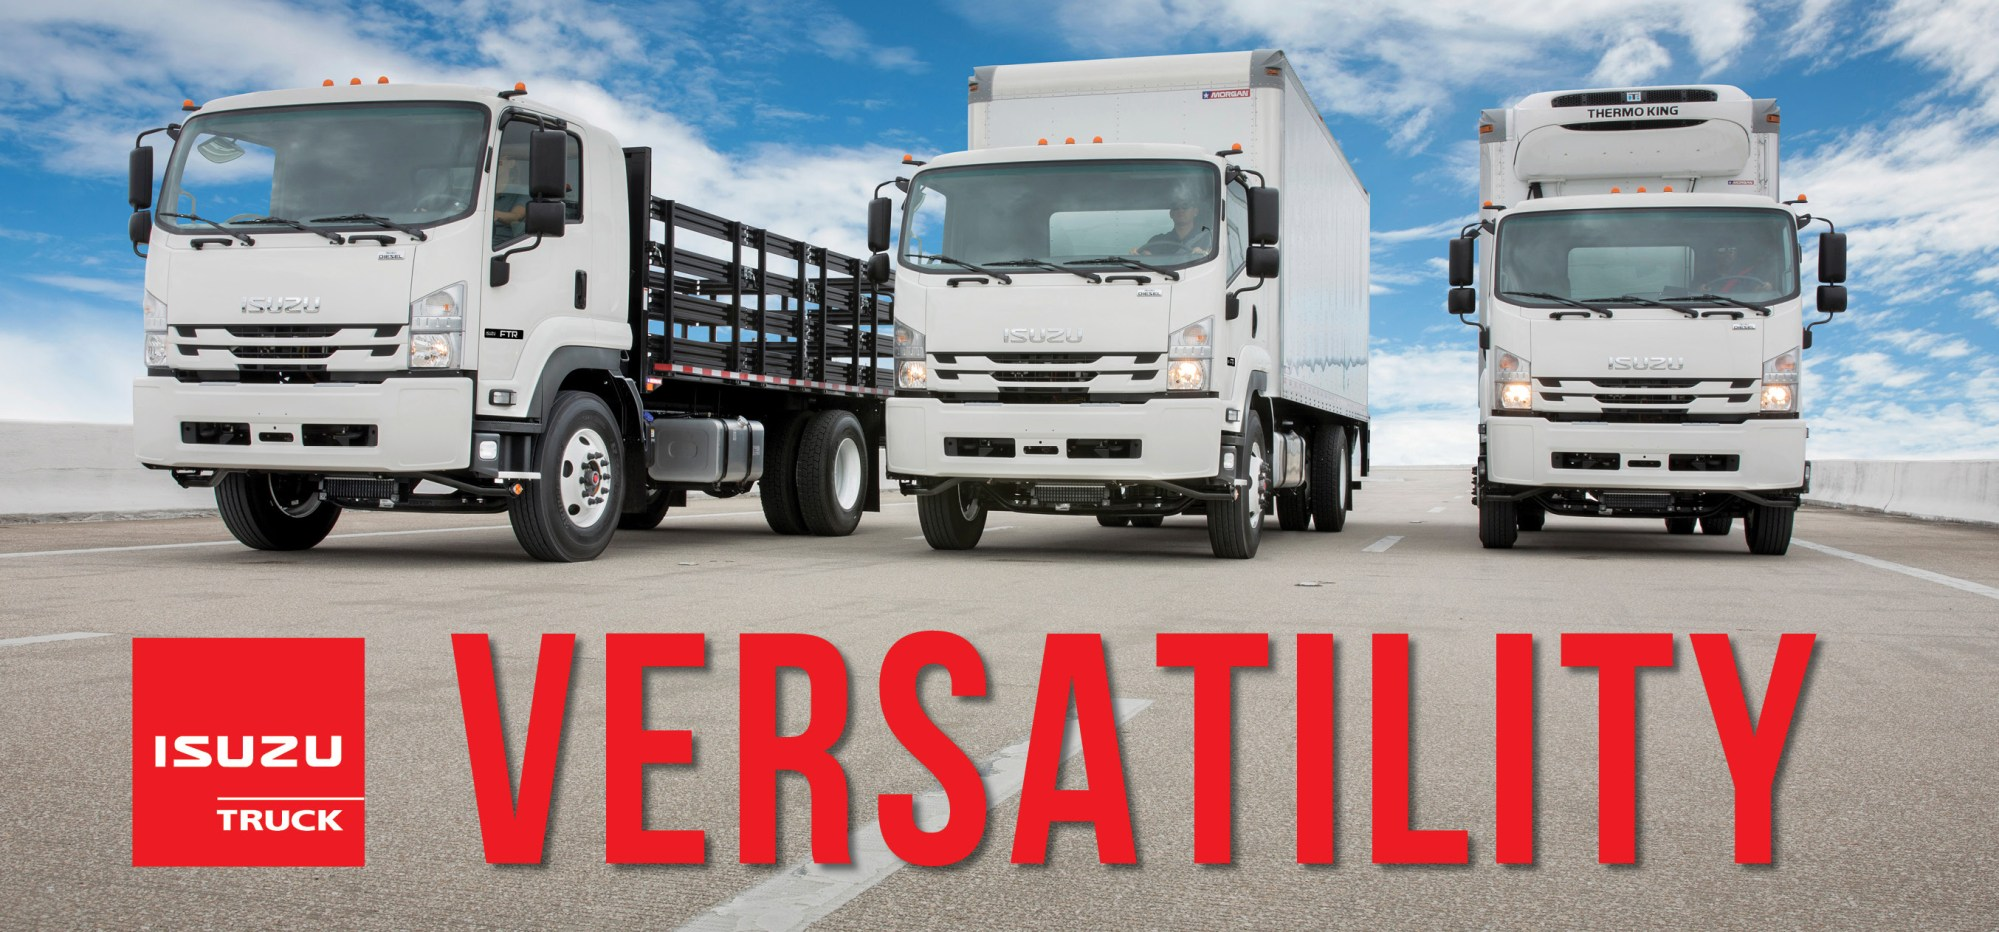 hight resolution of as an authorized isuzu dealer we have what you need to keep you going from sales to parts to service